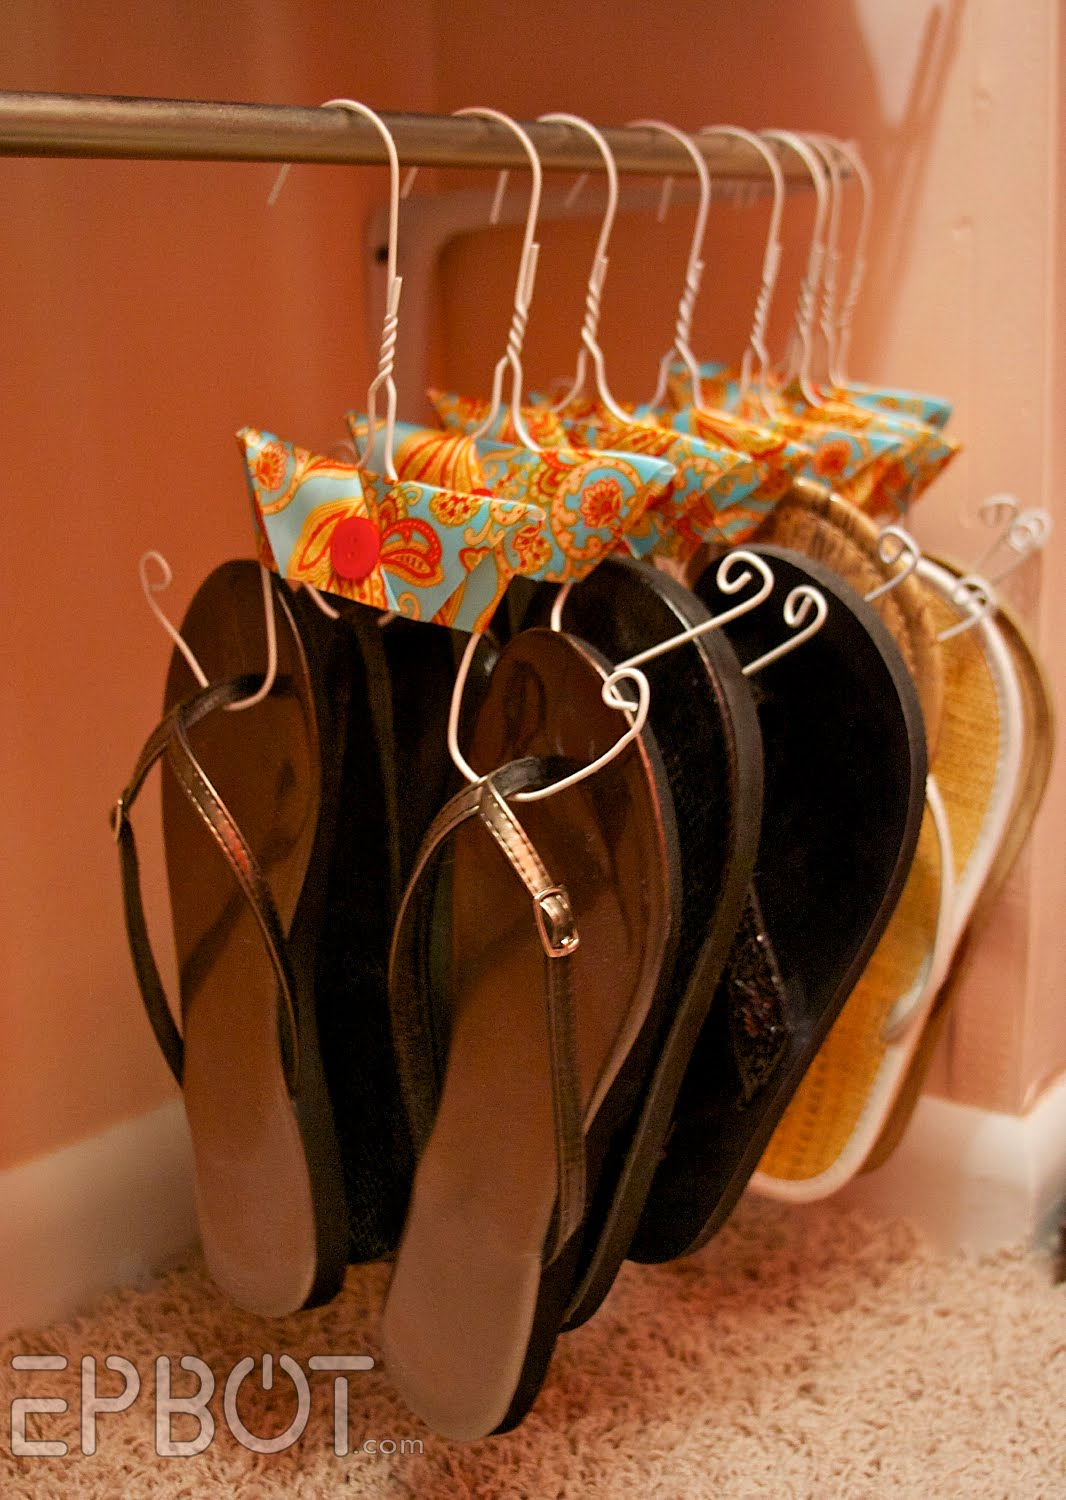 Simplify Organizing Your Shoes: Jen from Epbot shows us a very inexpensive way t